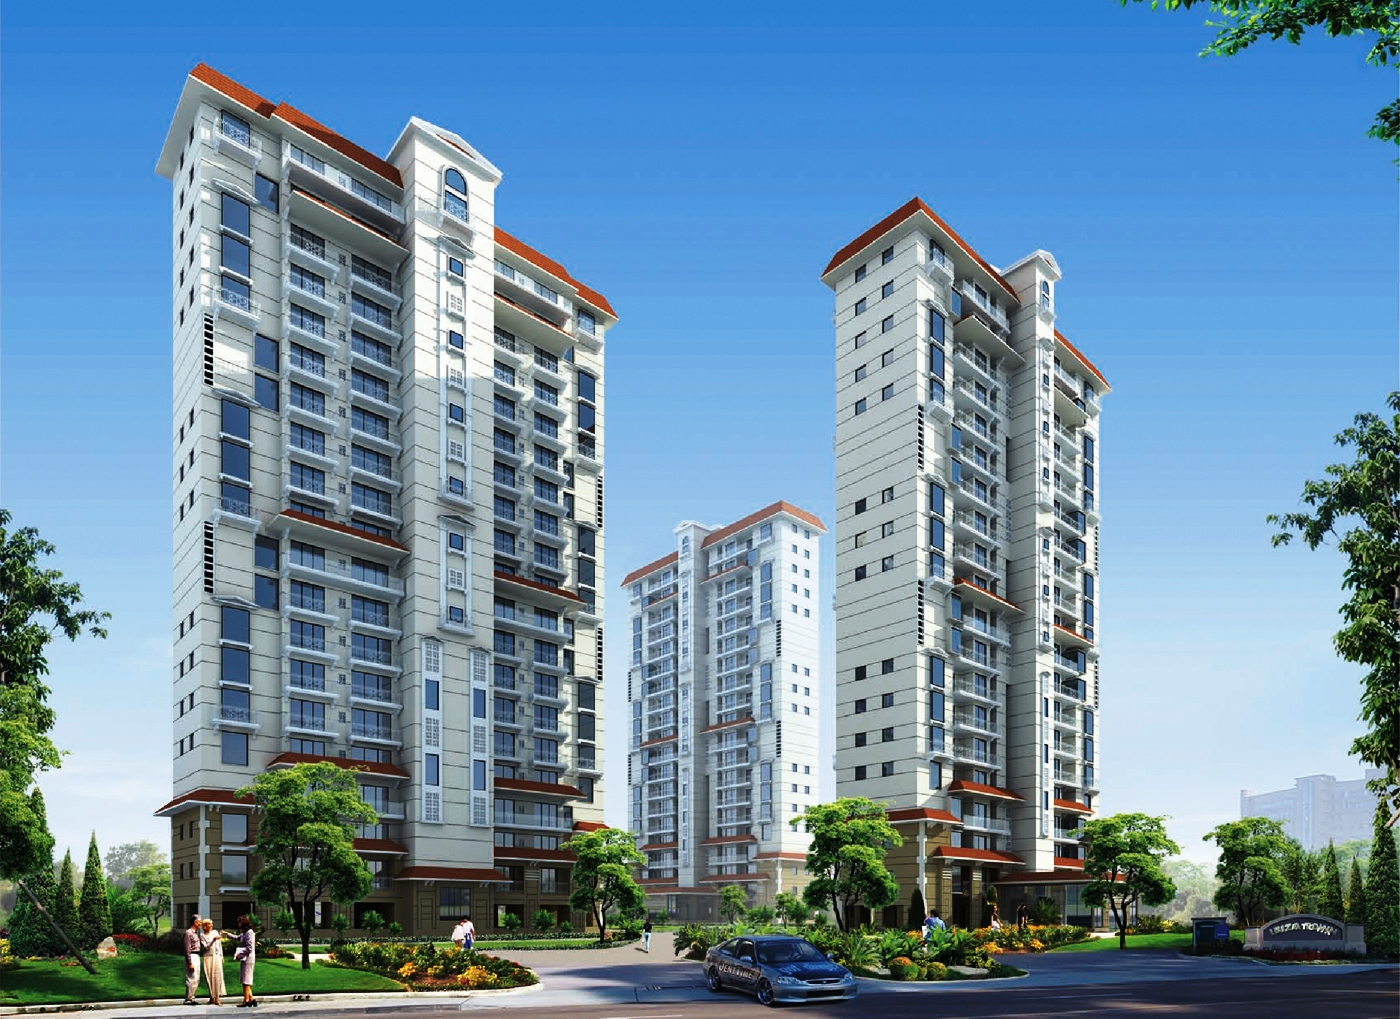 Krrish Shalimar Ibiza Town Home Loan